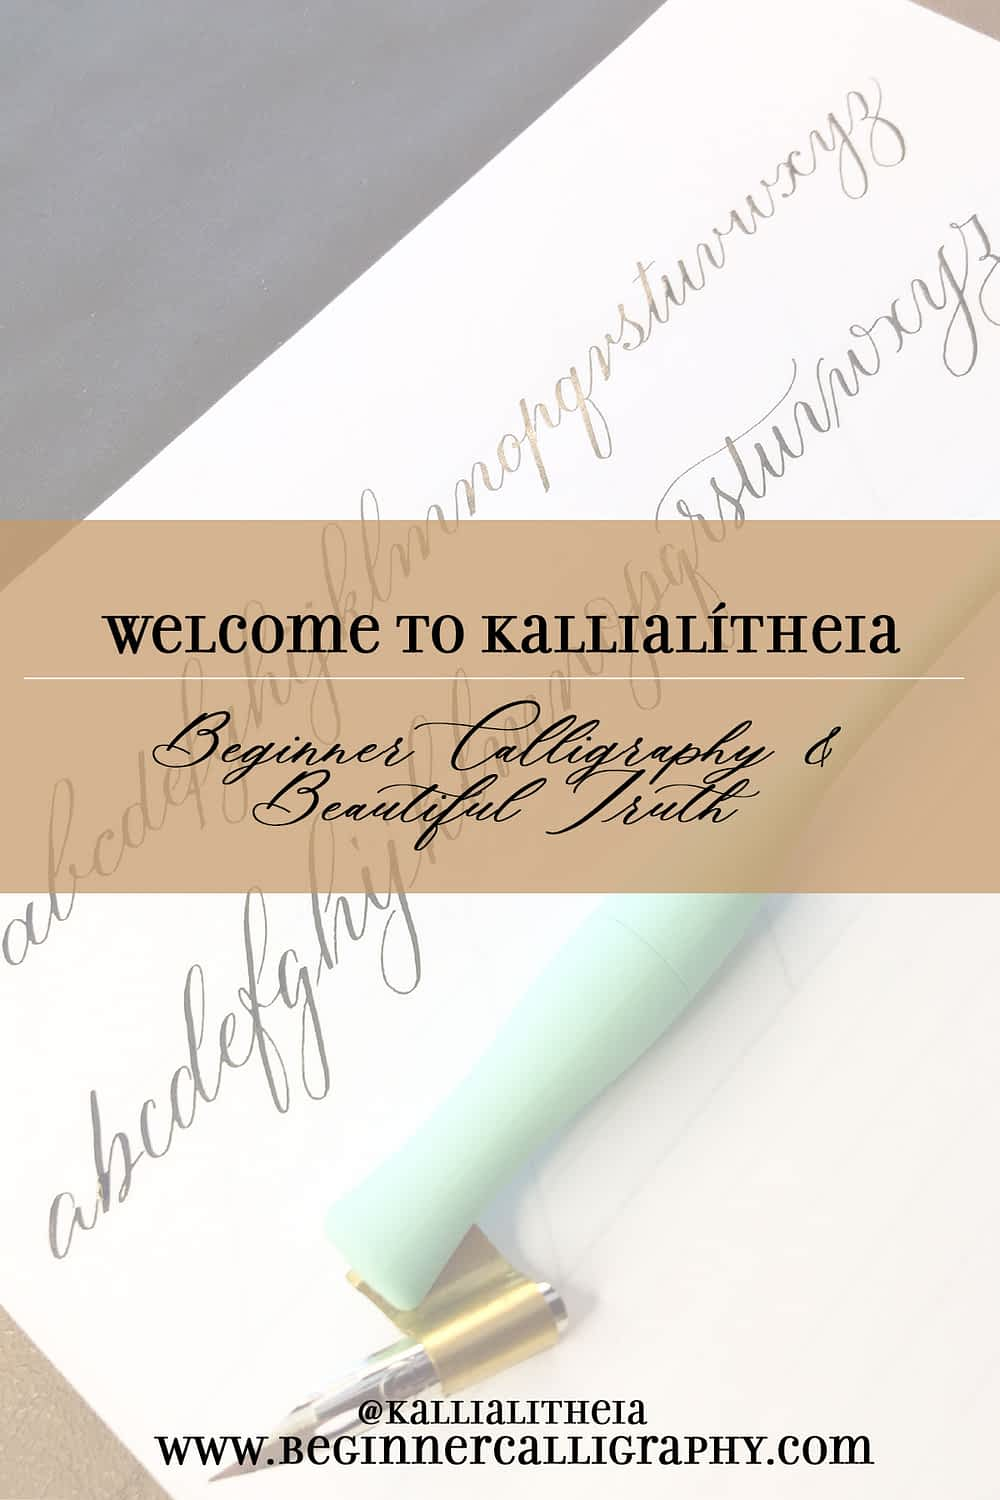 welcome to kallialitheia-beginner calligraphy and beautiful truth